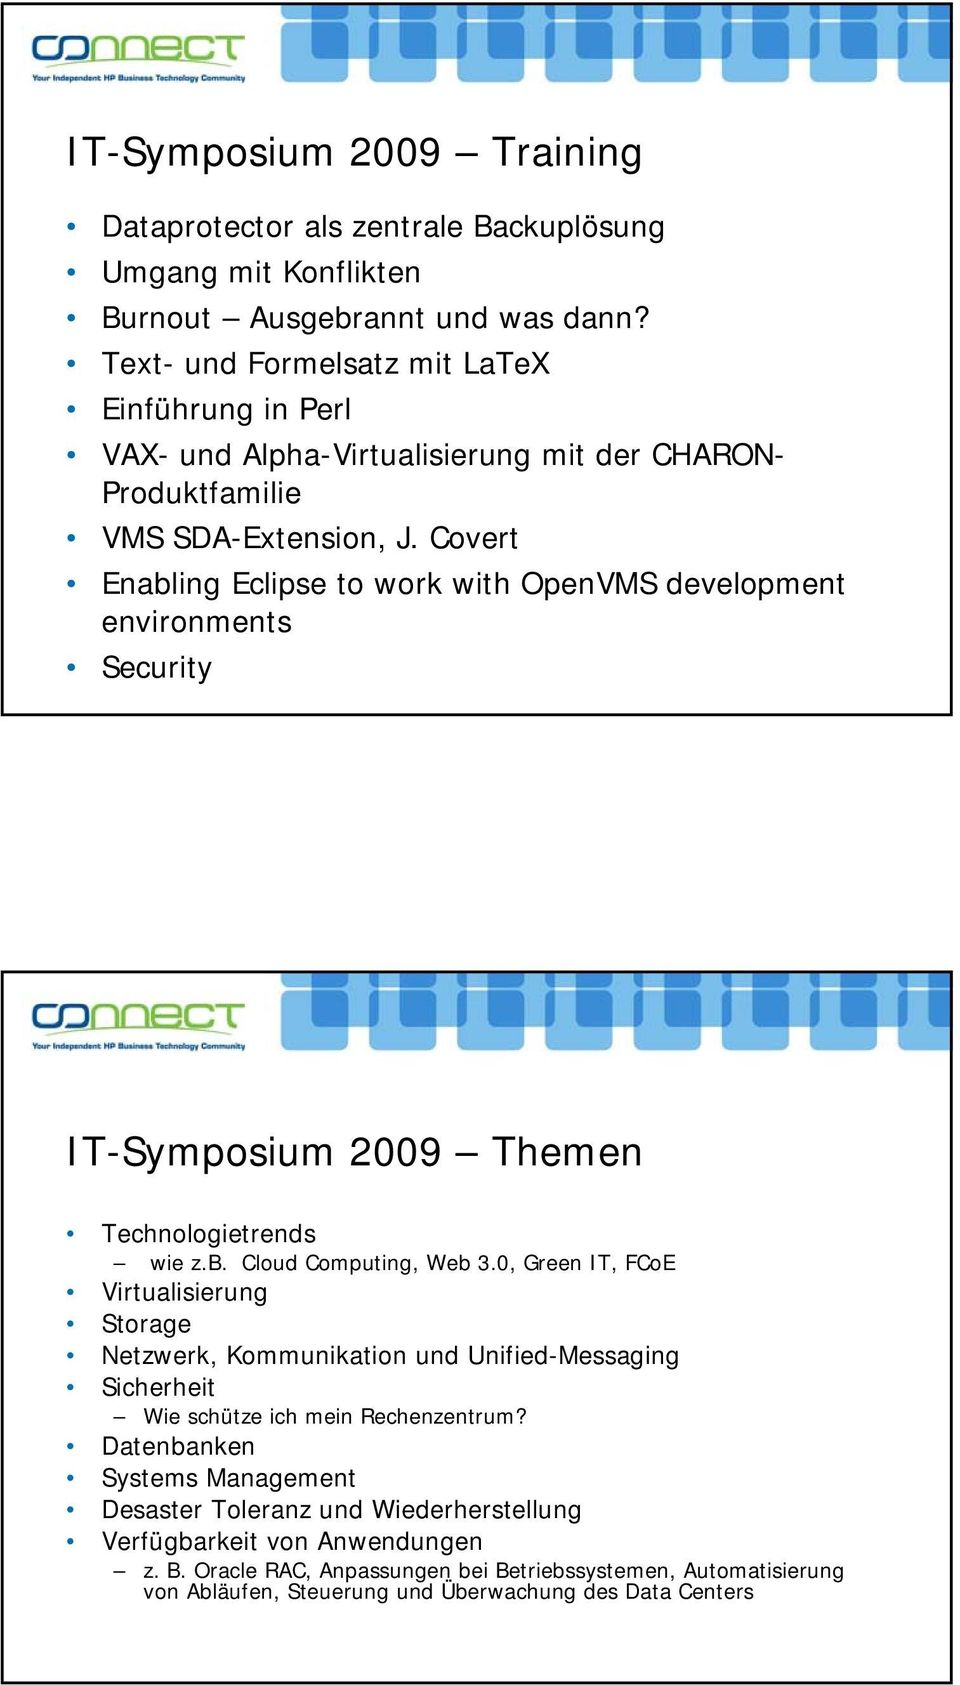 Covert Enabling Eclipse to work with OpenVMS development environments Security IT-Symposium 2009 Themen Technologietrends wie z.b. Cloud Computing, Web 3.